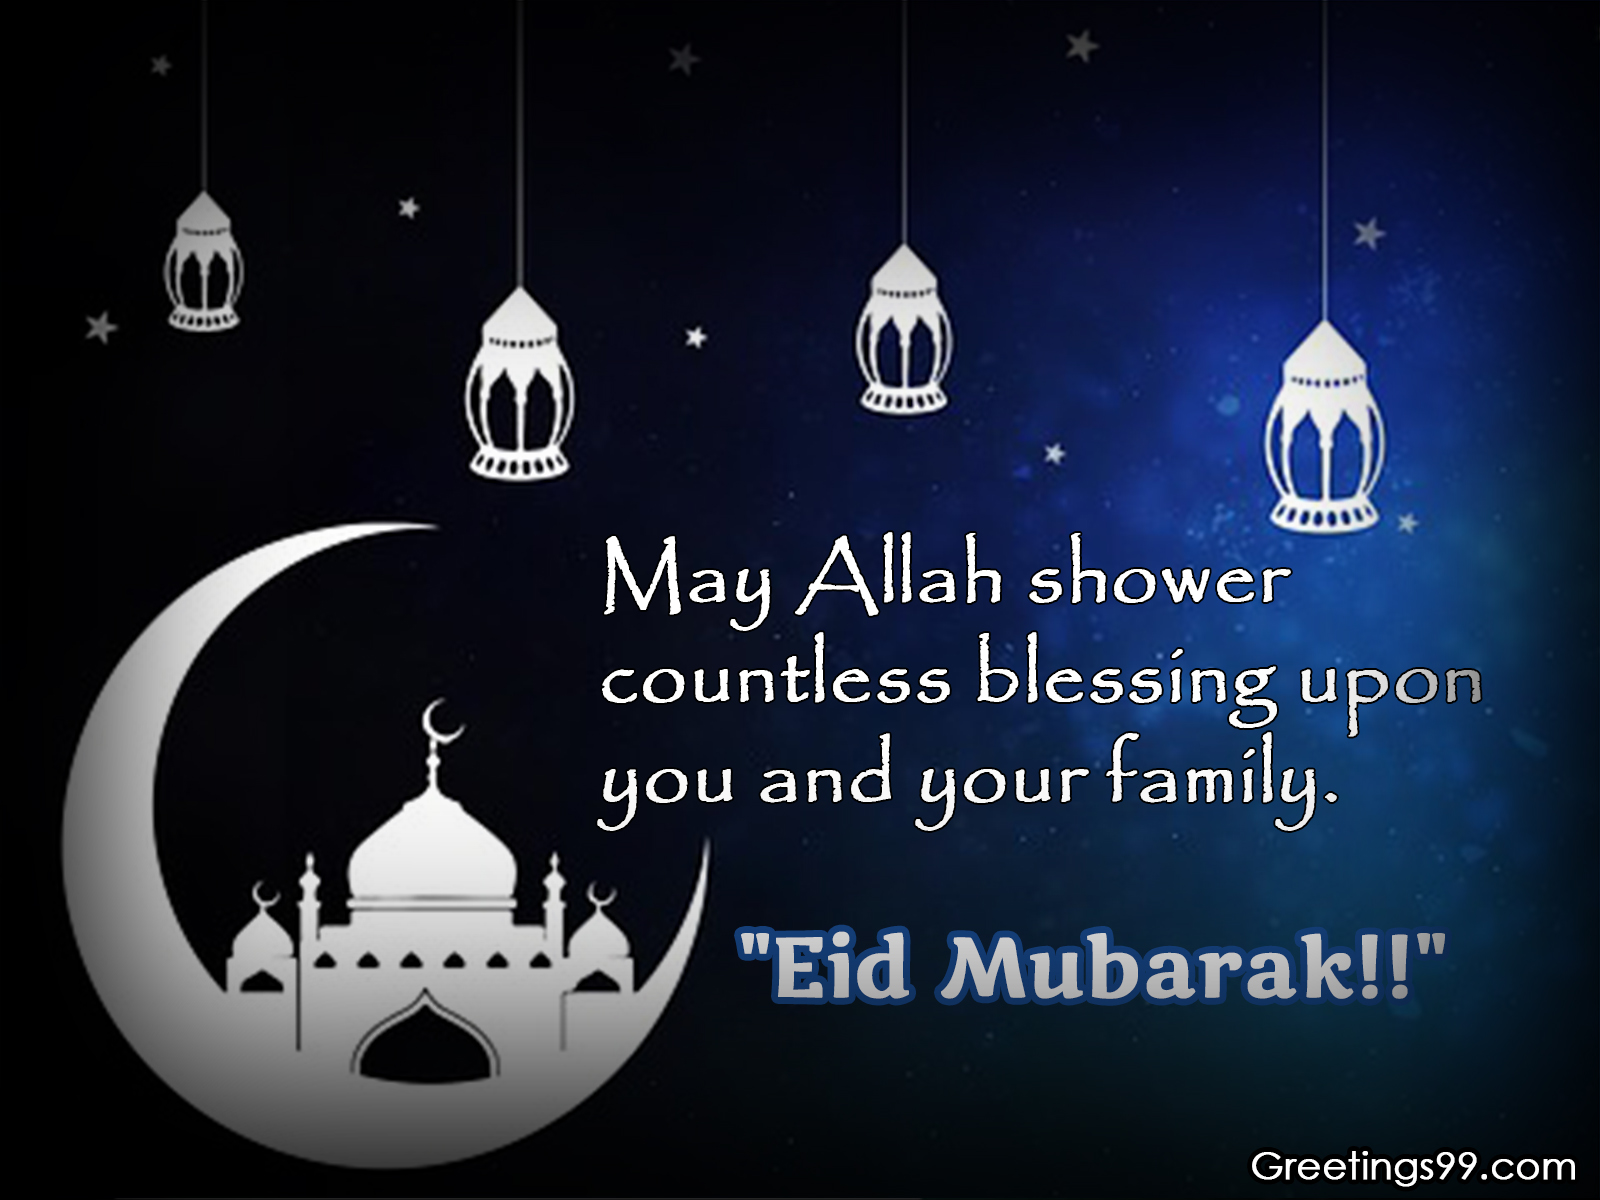 Best 2018 eid mubarak quotes eid mubarak wallpaper eid al fitr may allah accept your good deeds forgive your transgressions and ease the suffering of all peoples around the globe eid mubarak m4hsunfo